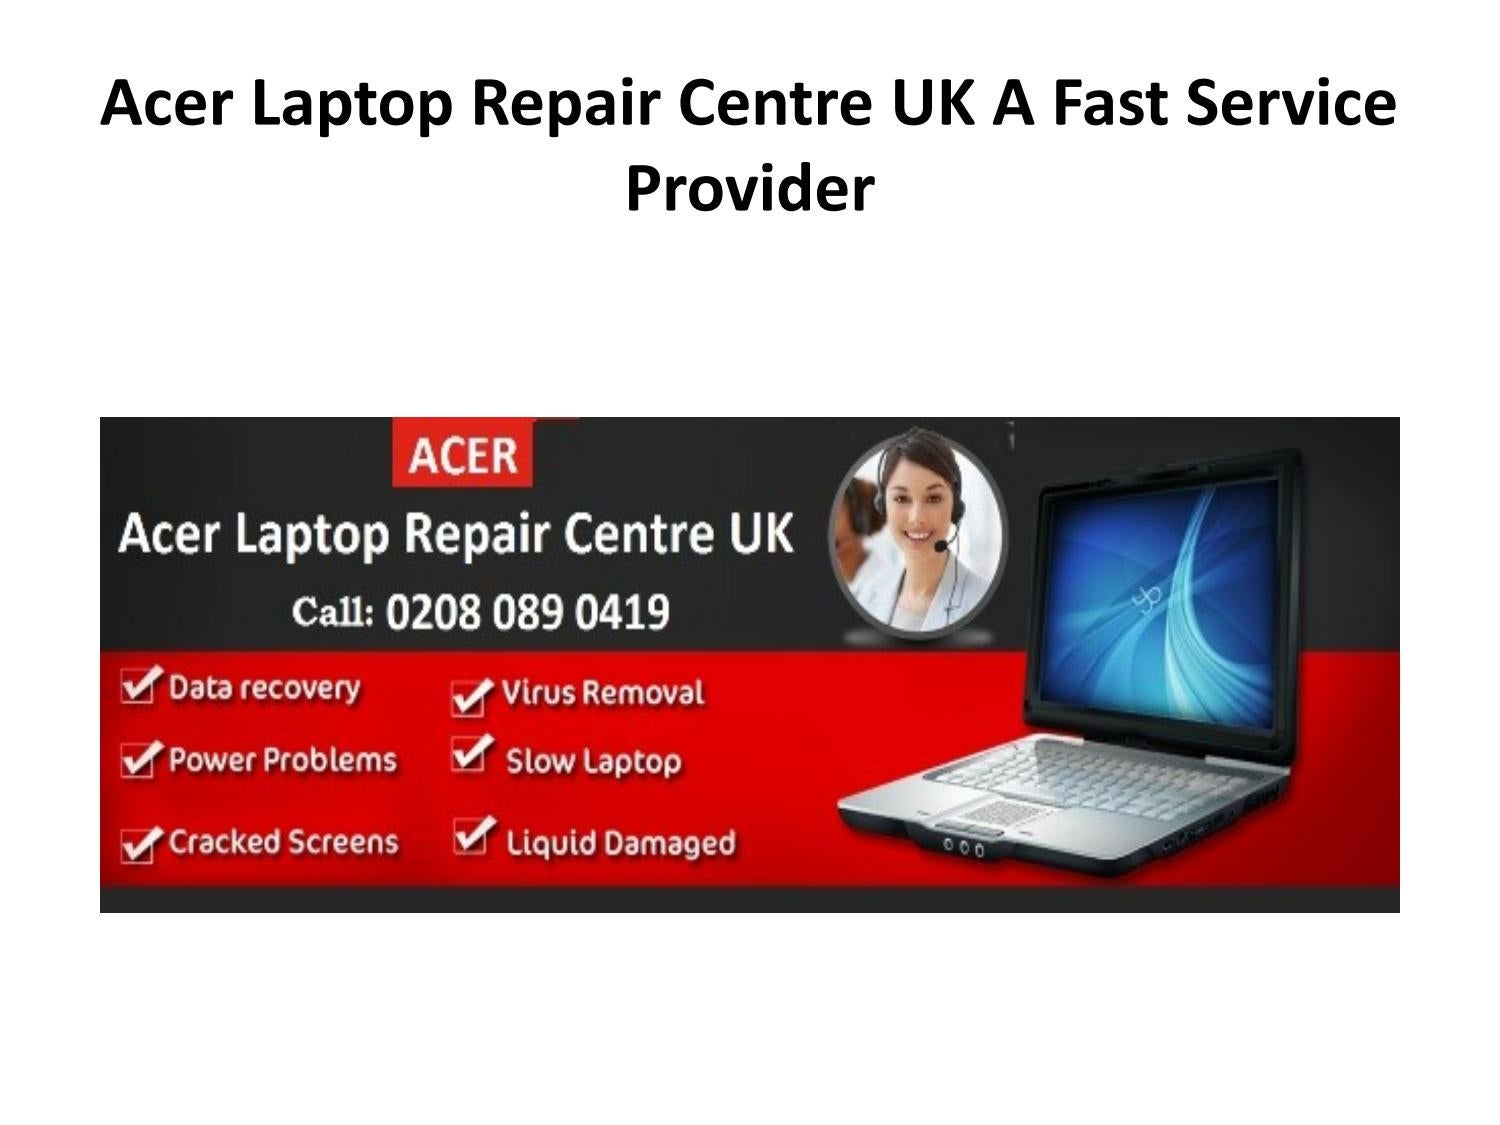 Acer Laptop Repair Centre UK: A Fast Service Provider by